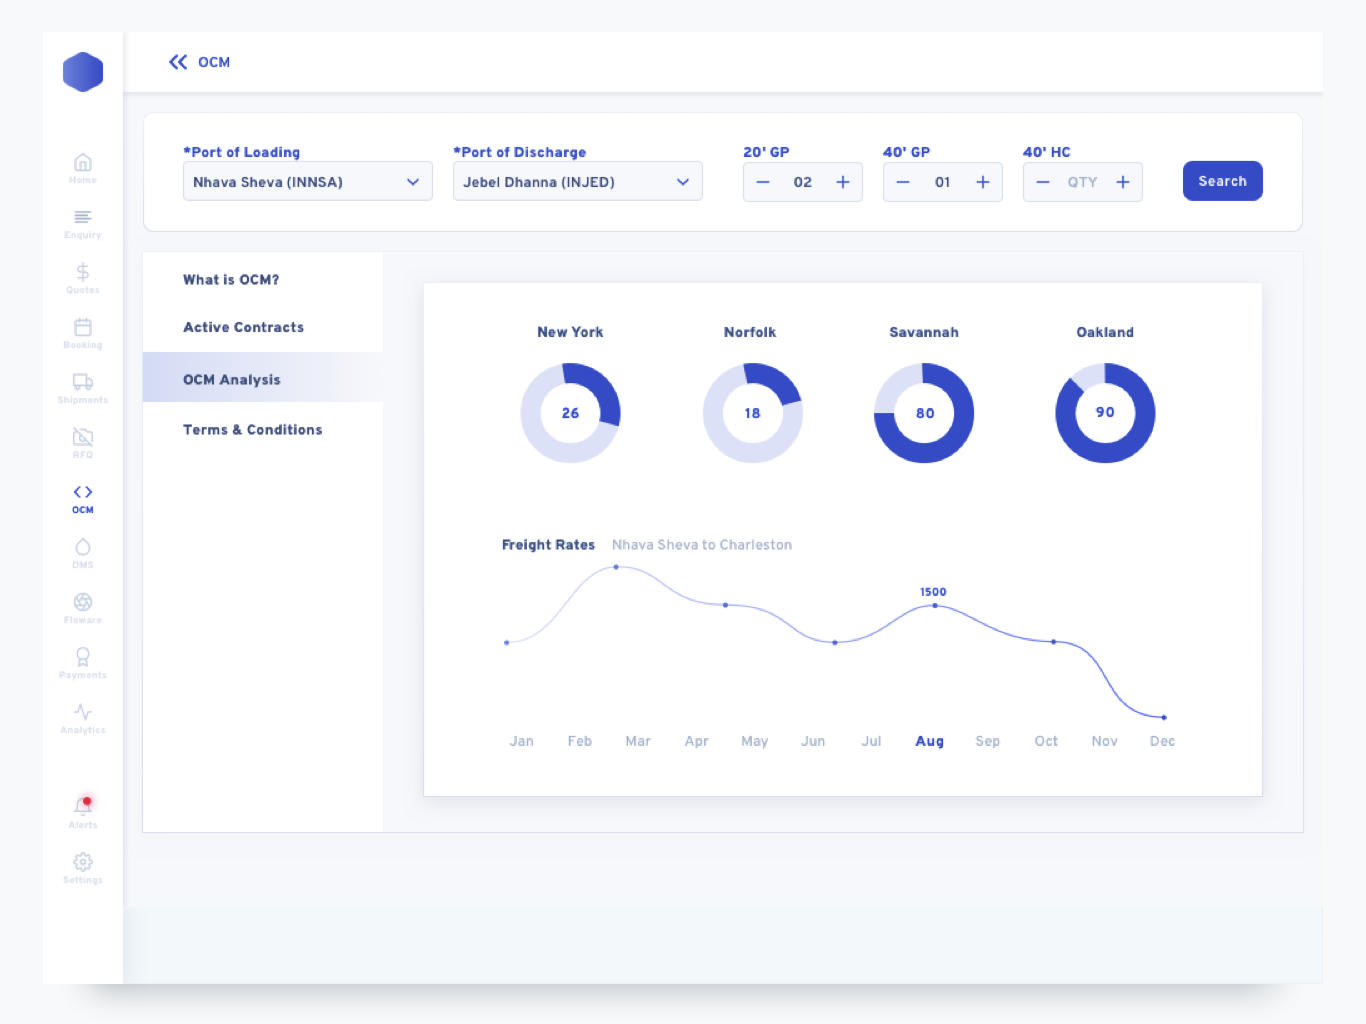 OCM Quotes Analysis charts analytics ux design shipping delivery package dashboard sass ui sidebar form field type table minimal map data navigation invoice payment